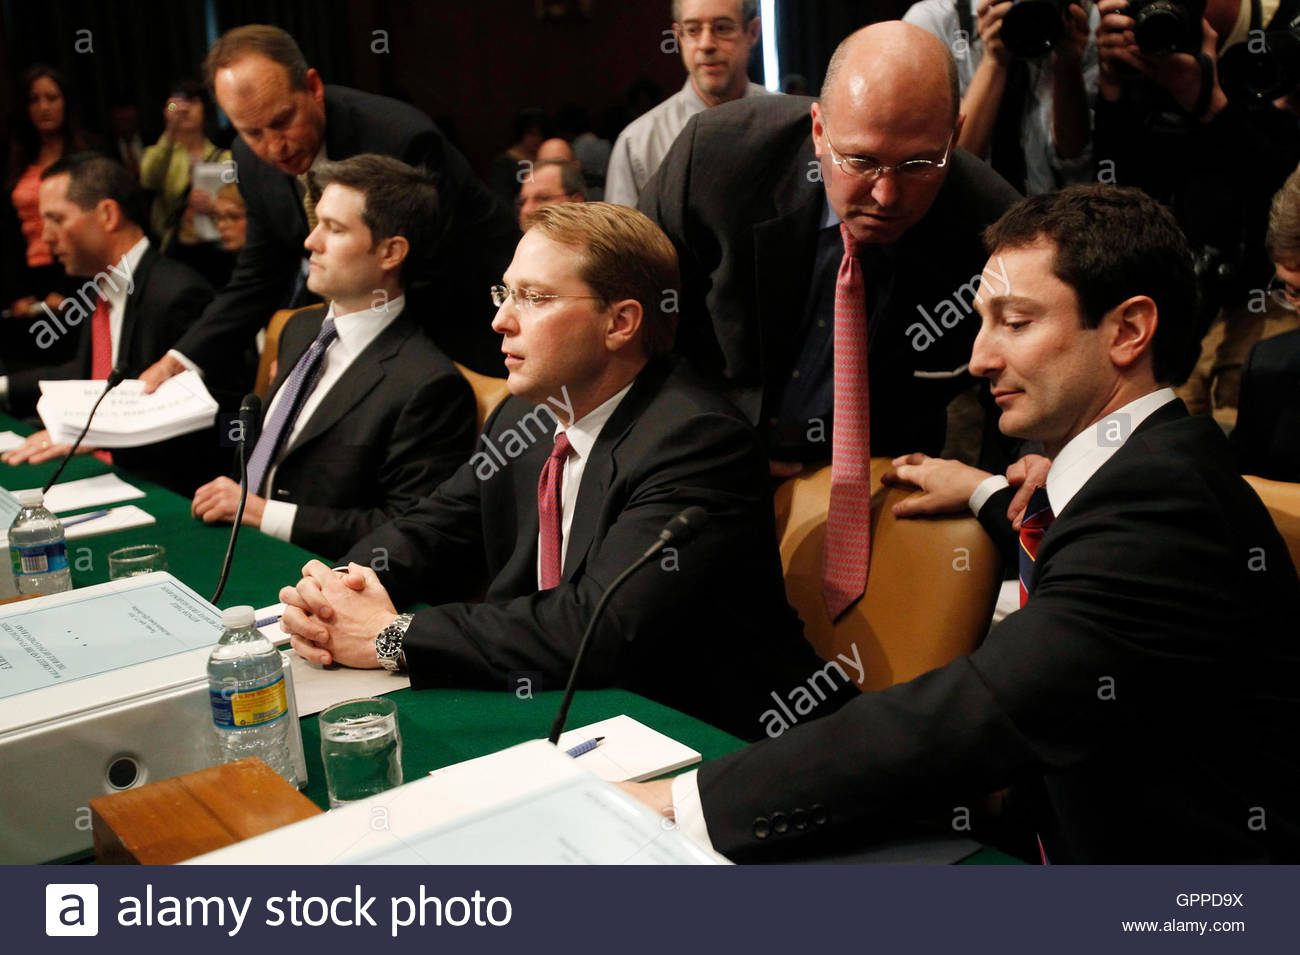 goldman sachs former head of the mortgages department daniel goldman sachs former head of the mortgages department daniel sparks former managing director in the structured products trading group joshua birnbaum